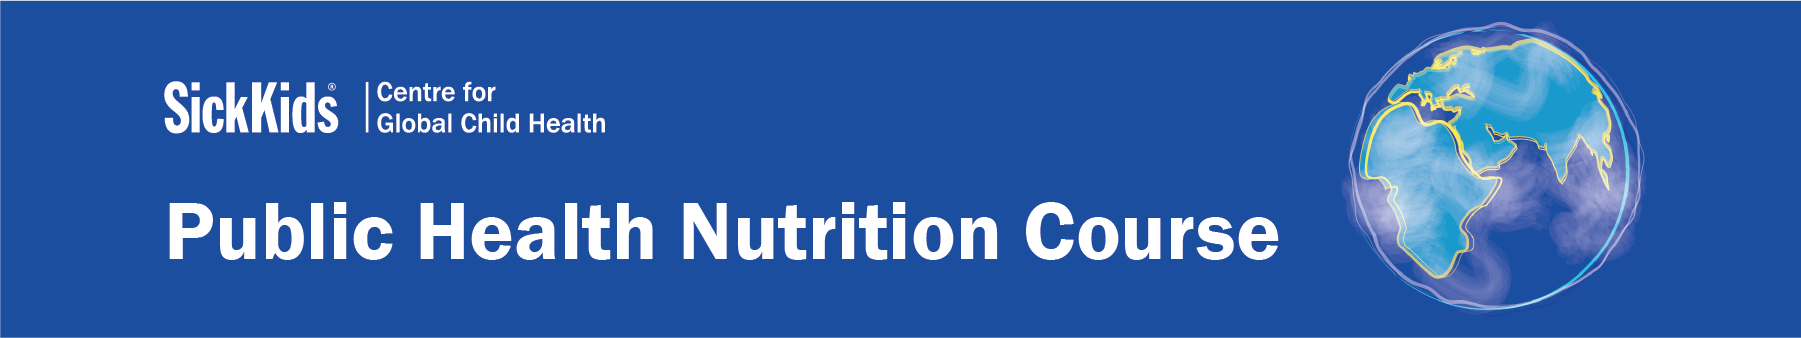 SickKids Public Health Nutrition Course